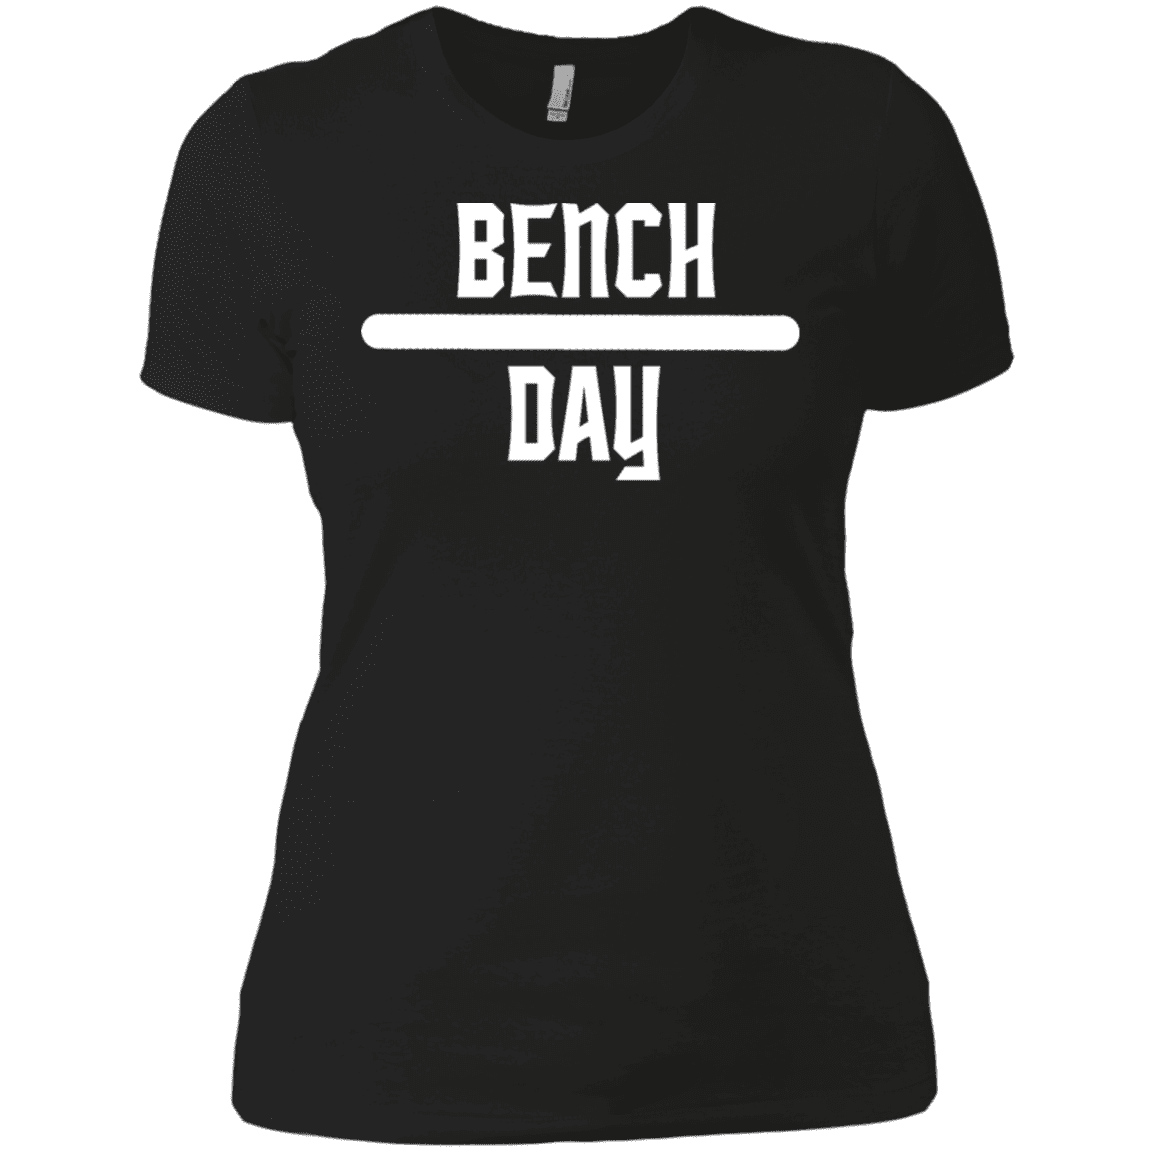 T-Shirts Black / X-Small Bench Day Women's XC Tee